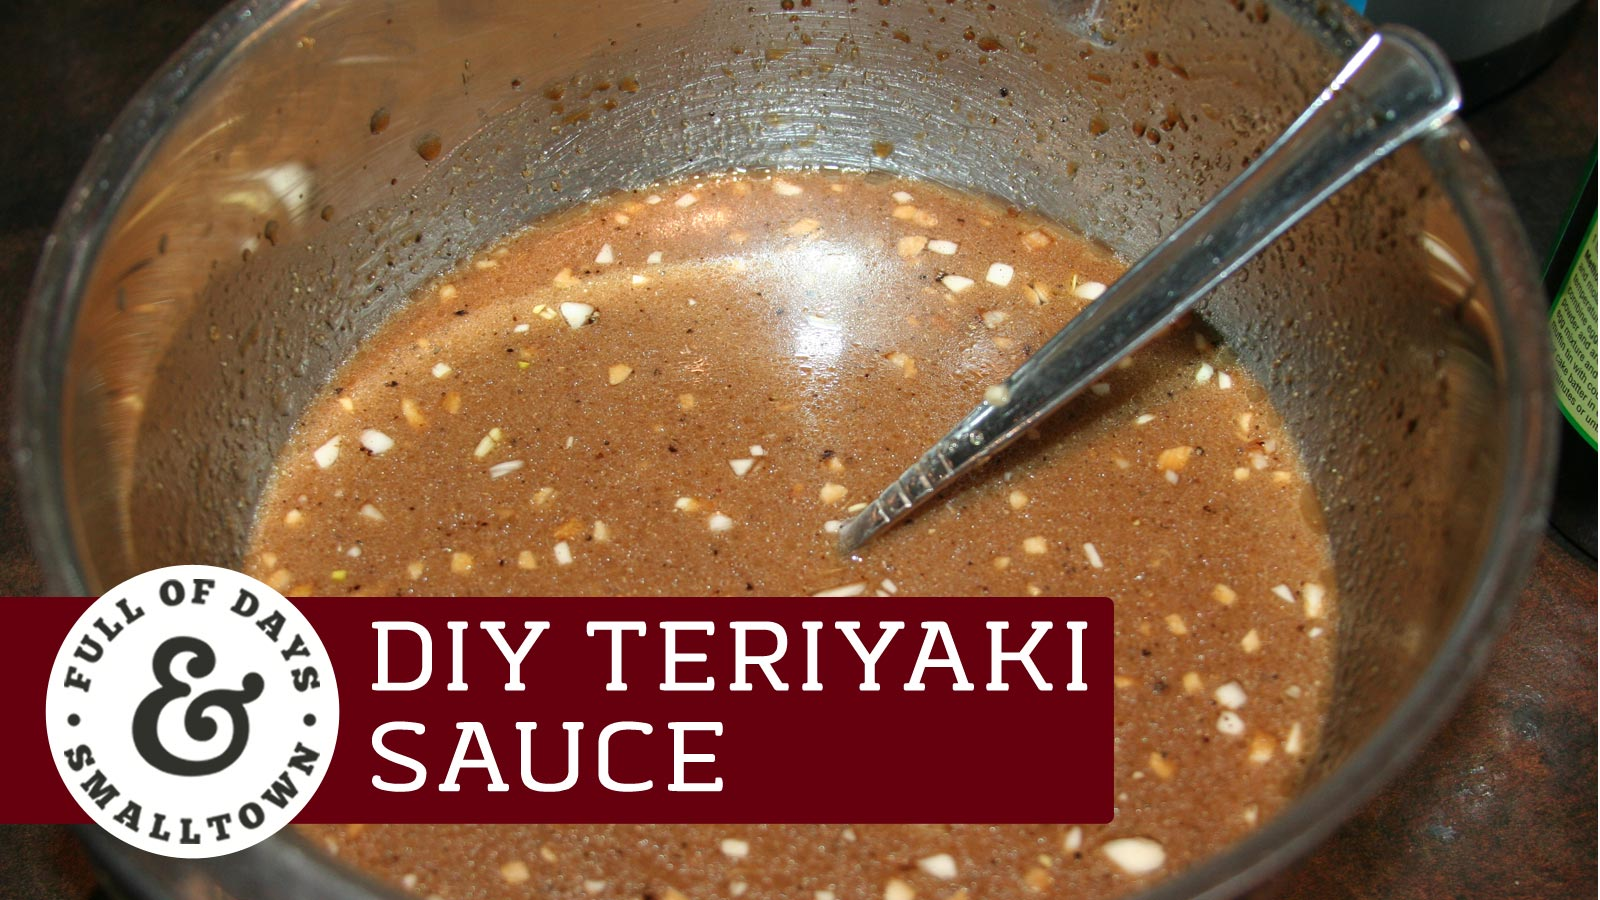 diy-teriyaki-sauce_full-of-days_1600-x-900